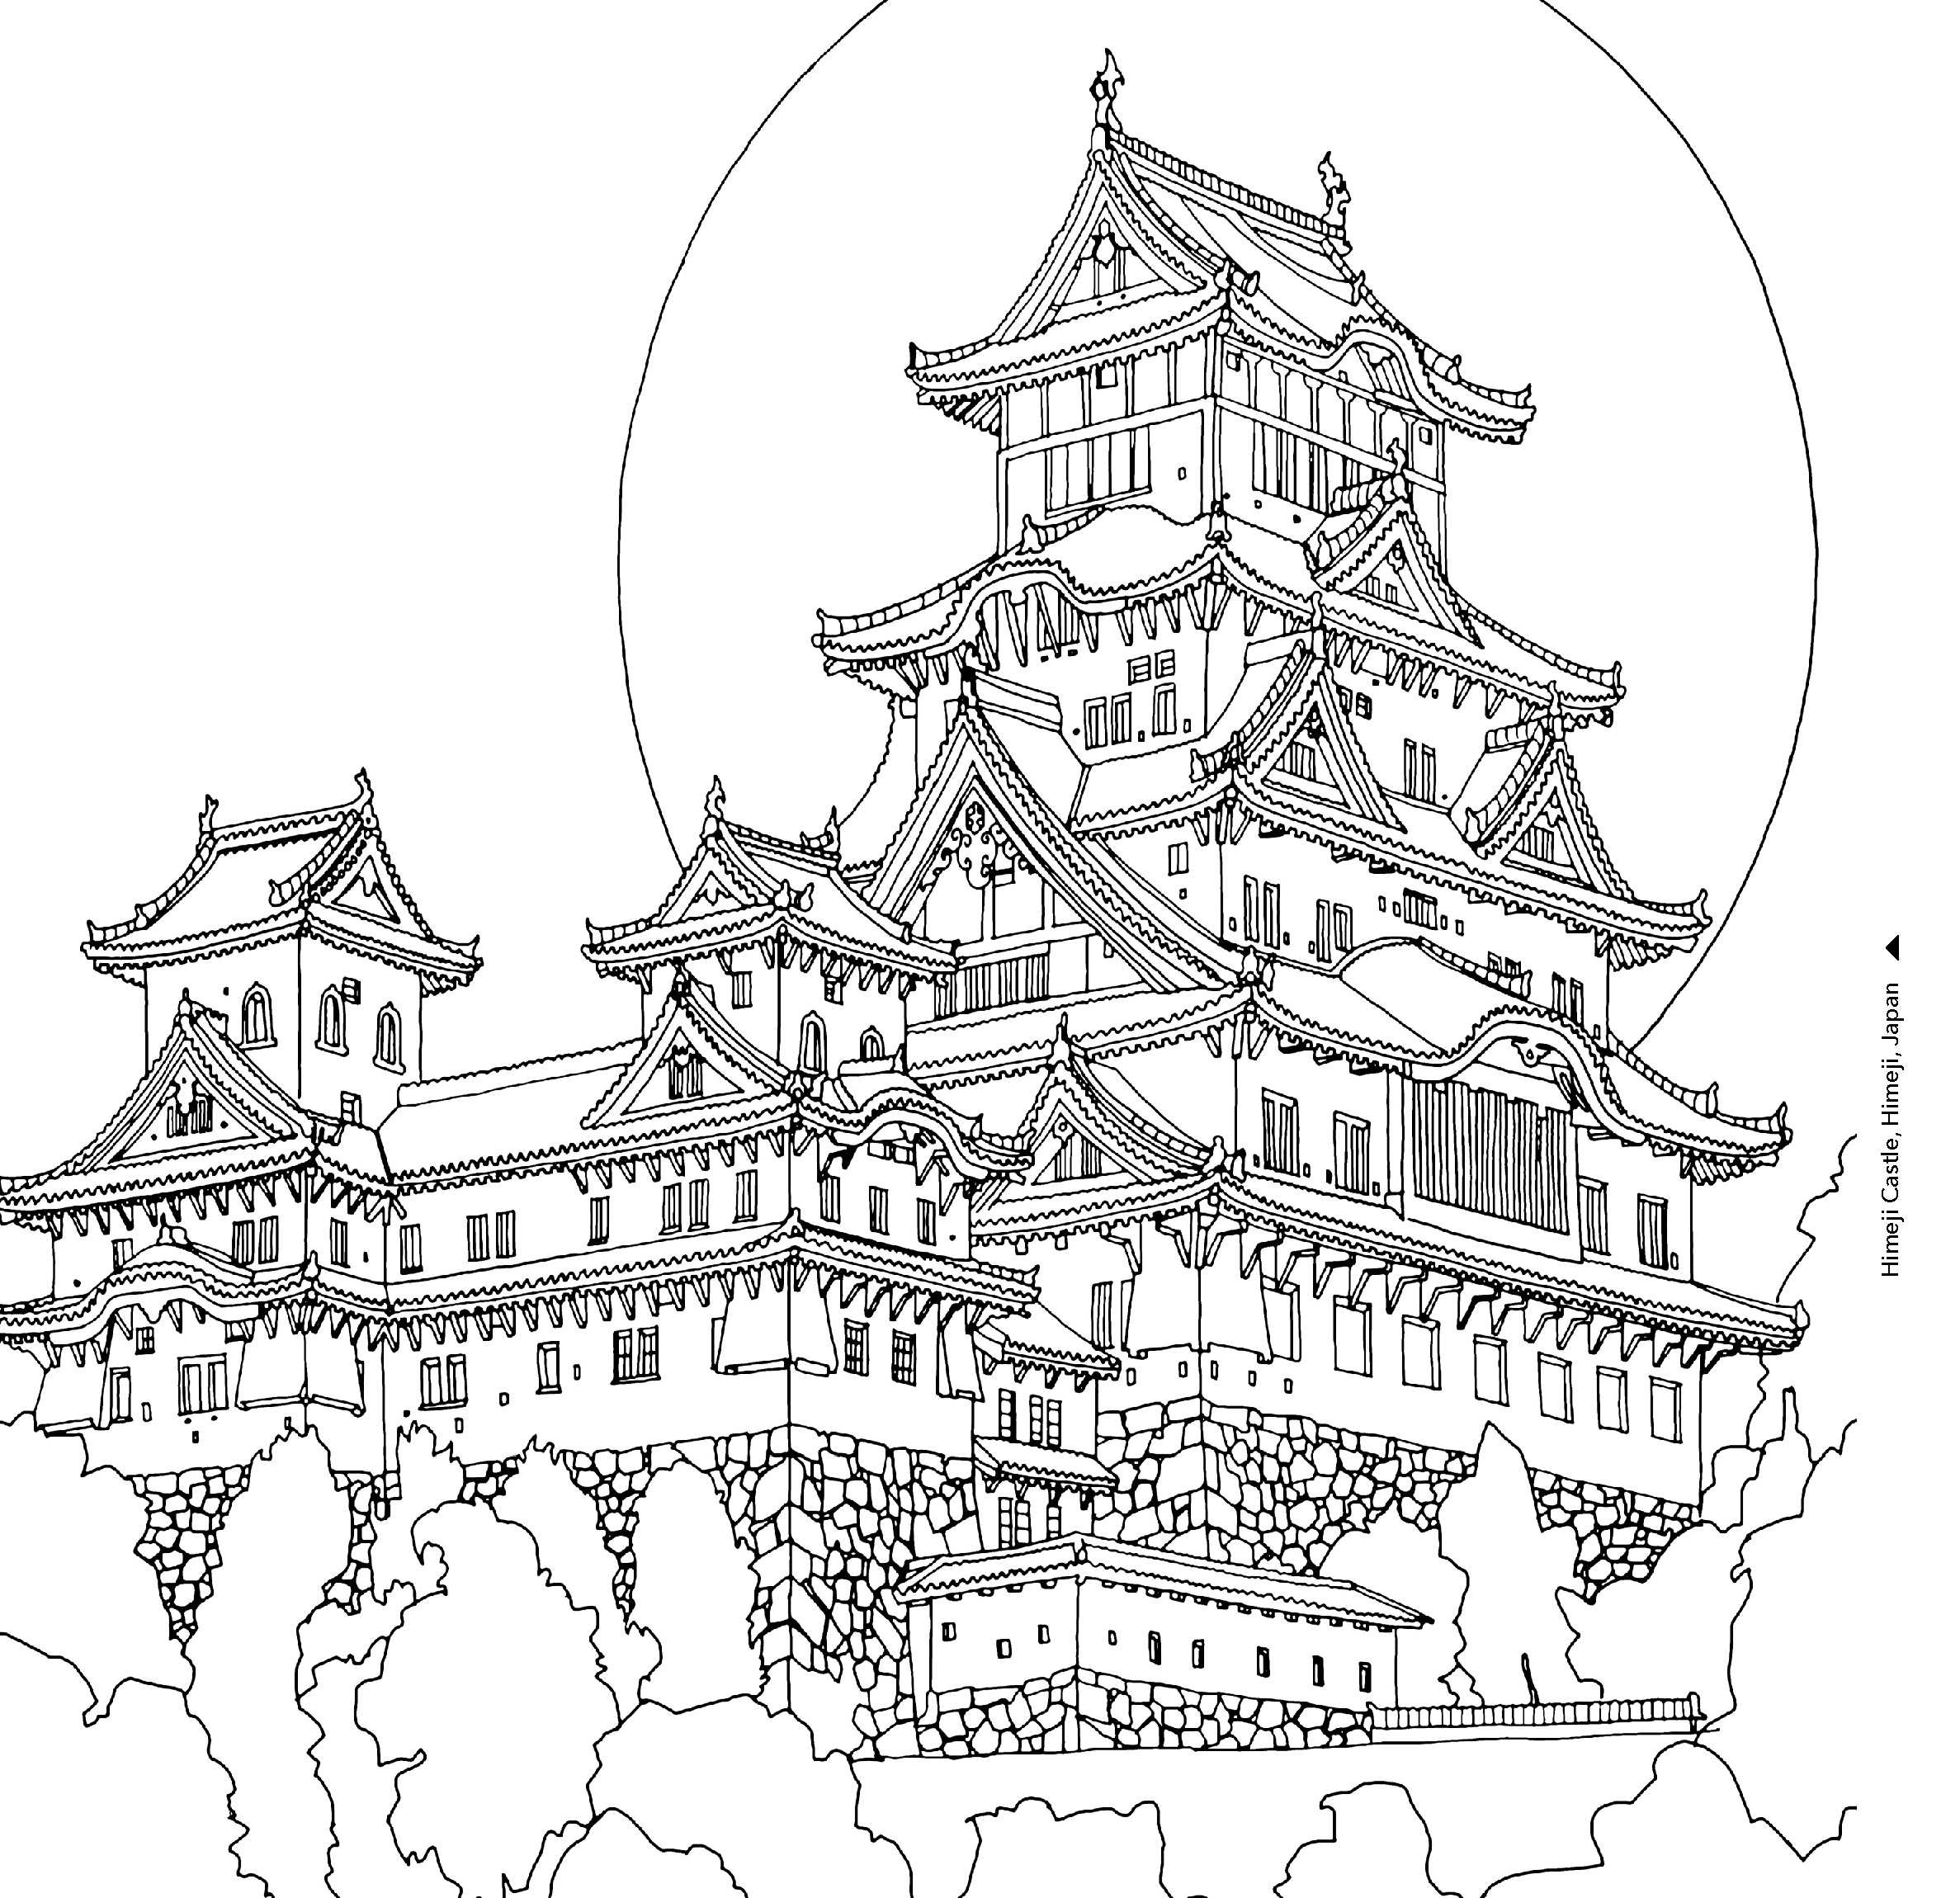 hogwarts castle coloring hogwarts castle coloring page from harry potter category coloring castle hogwarts